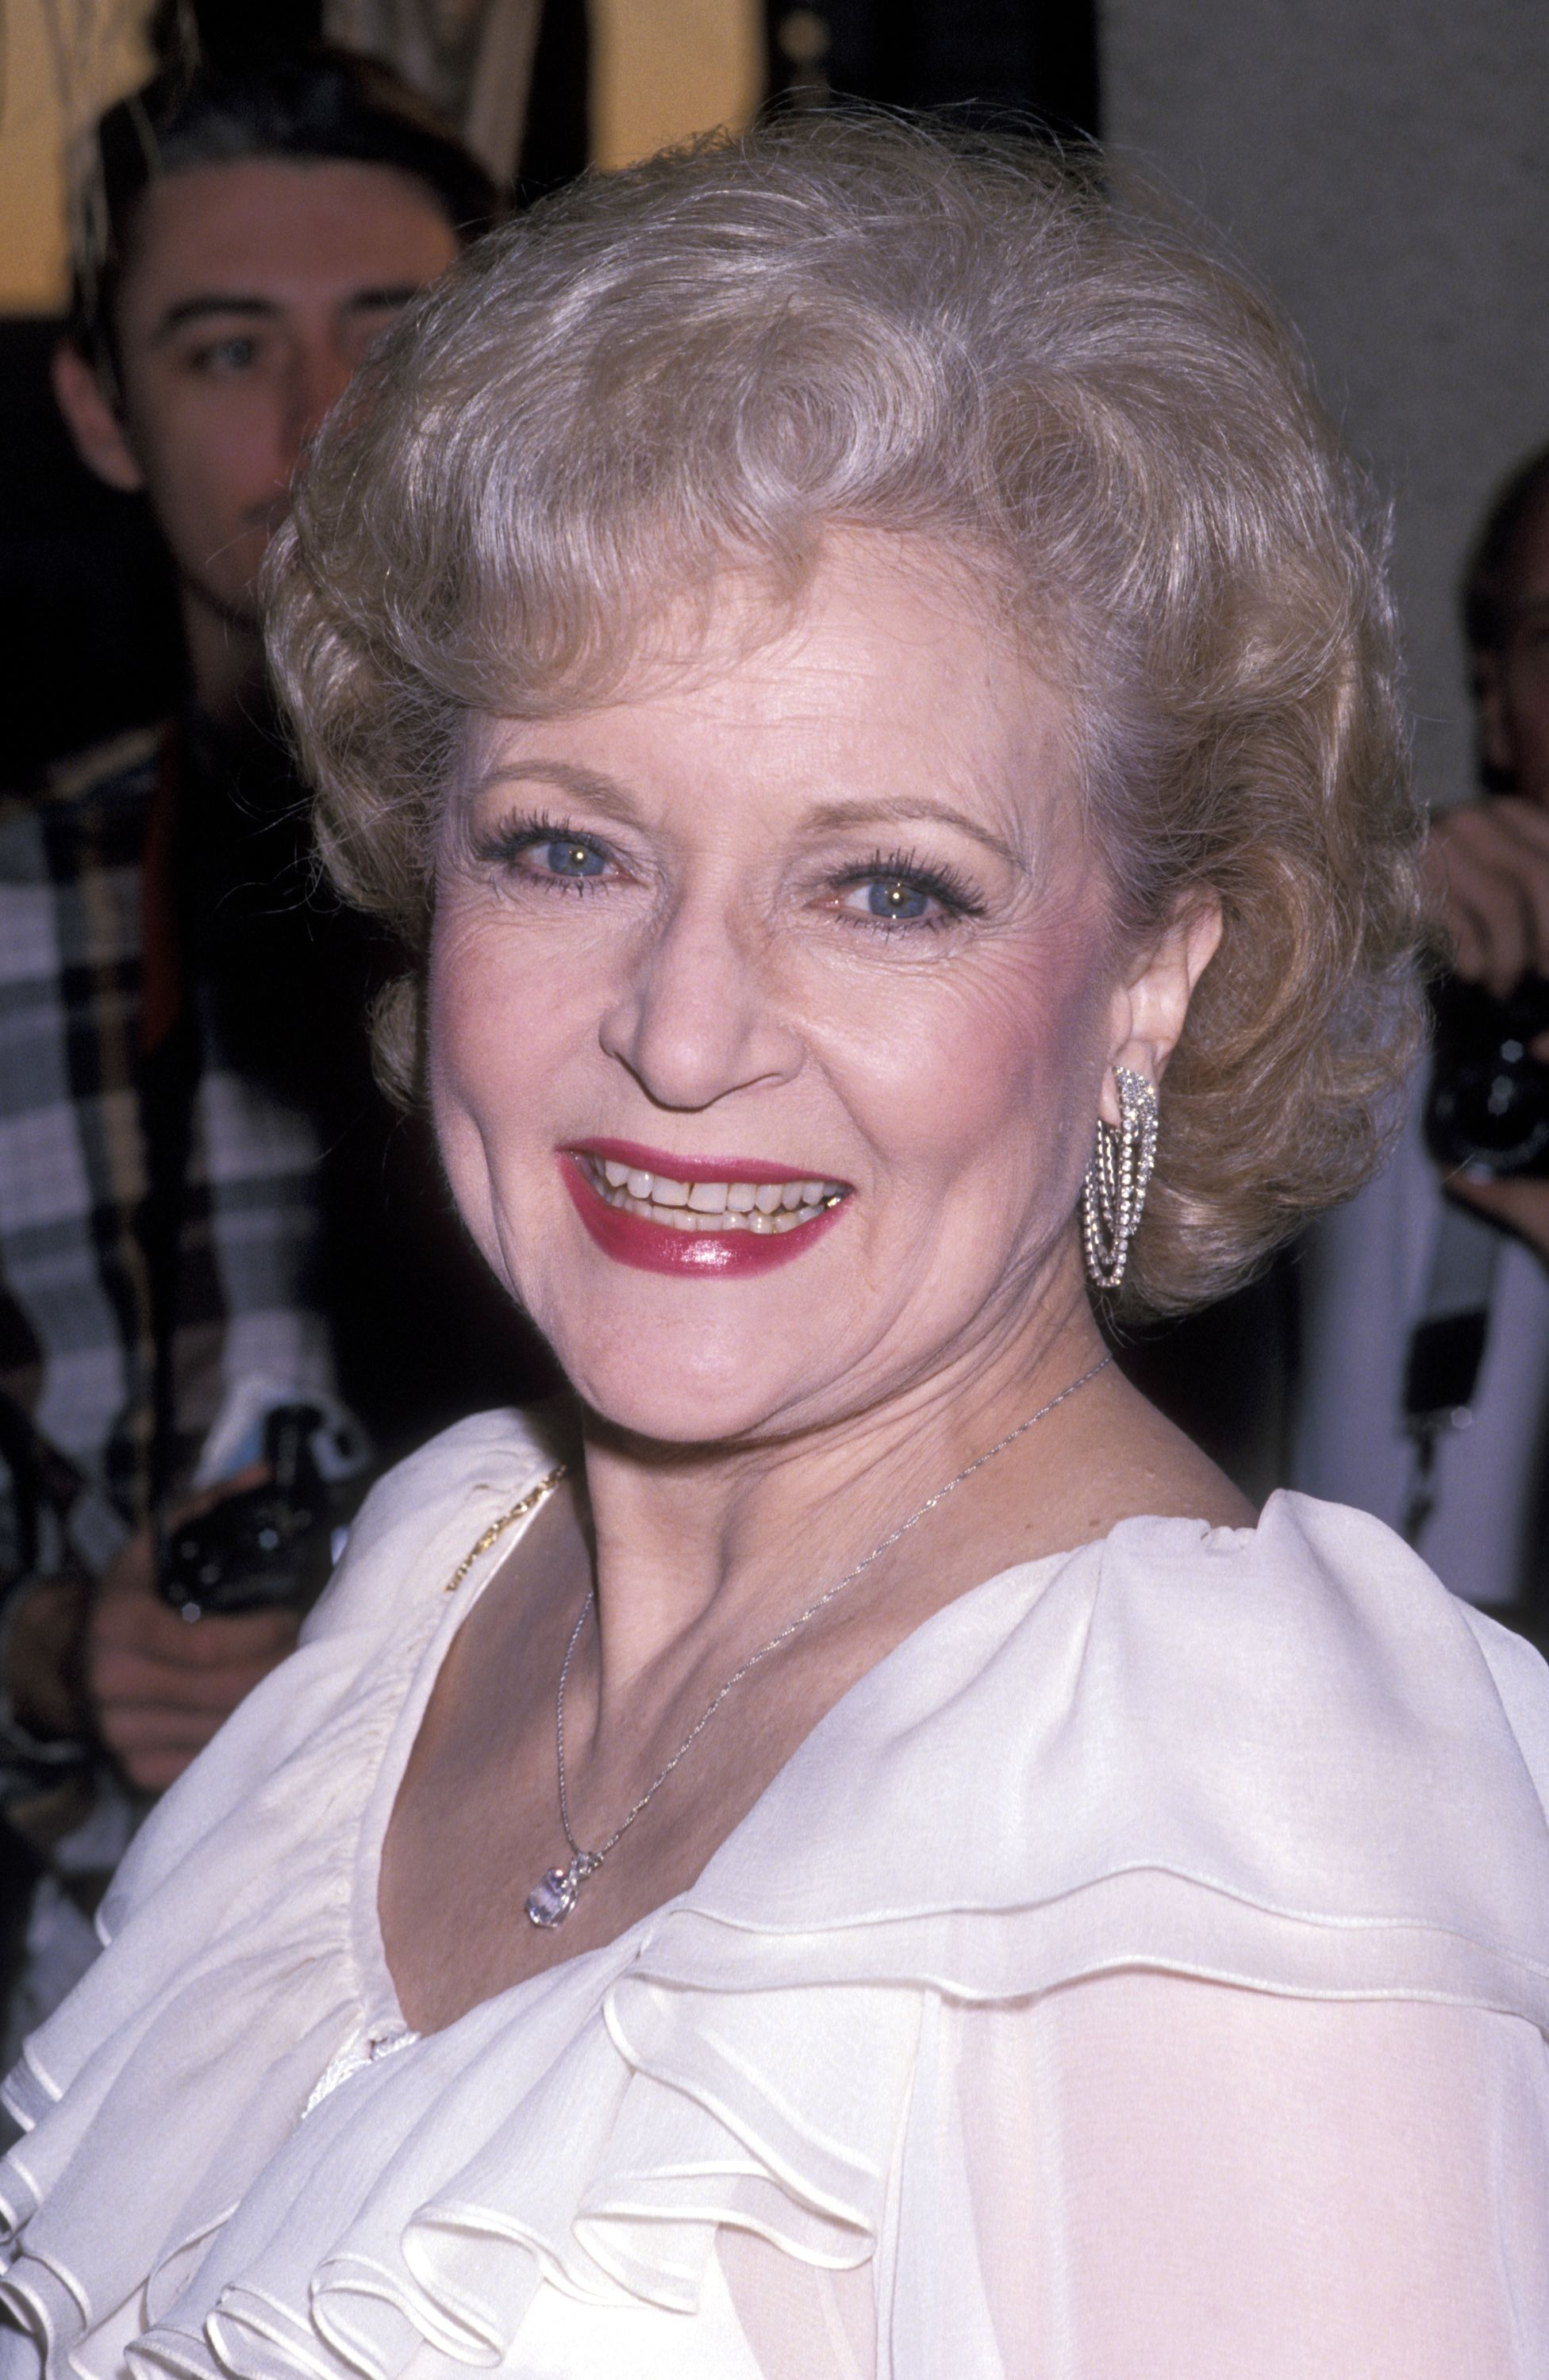 who is betty white married to